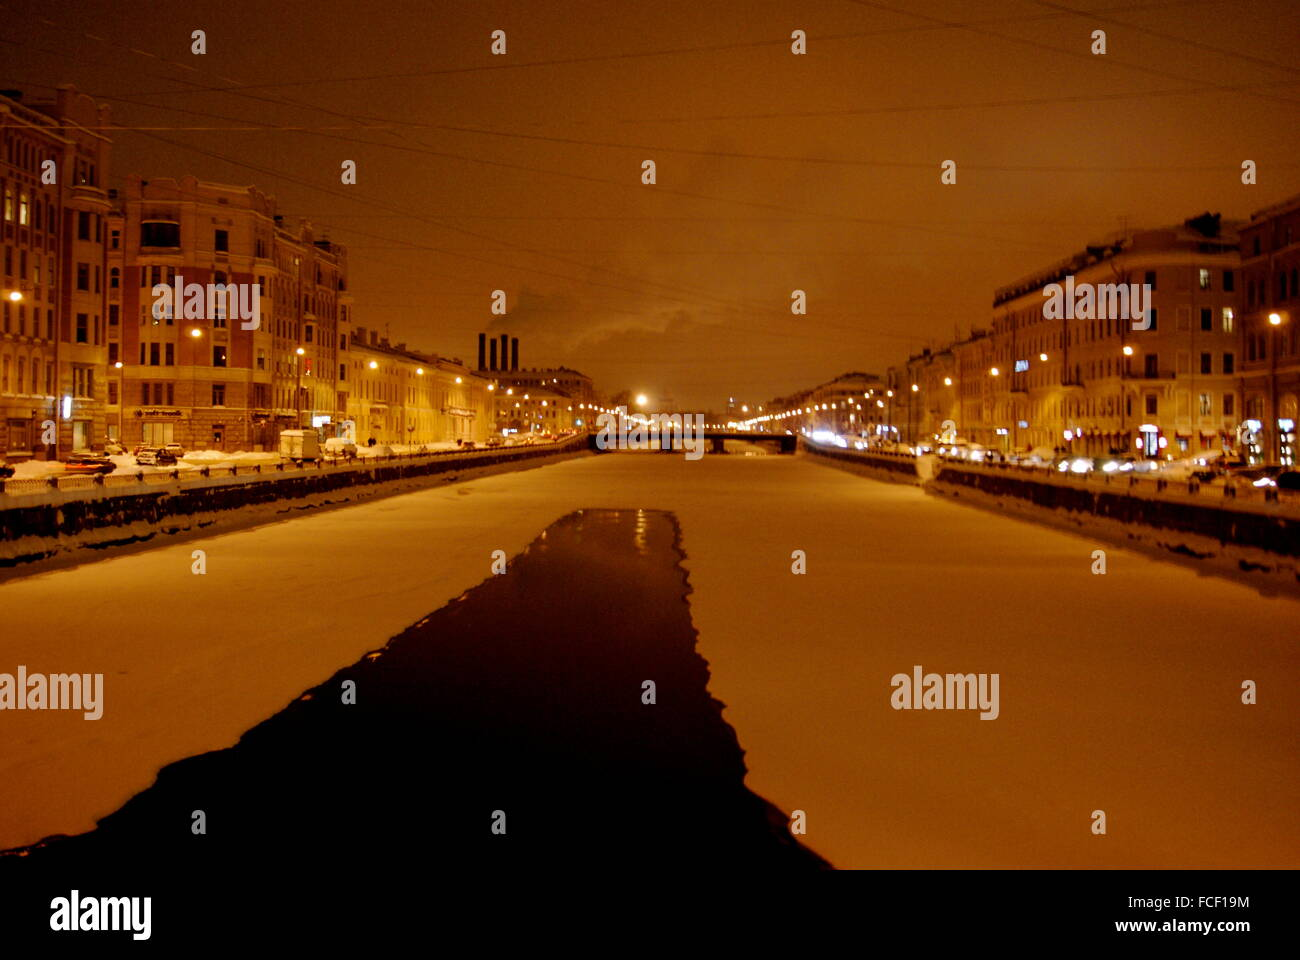 Frozen Canal Surrounded By Illuminated Buildings At Night - Stock Image